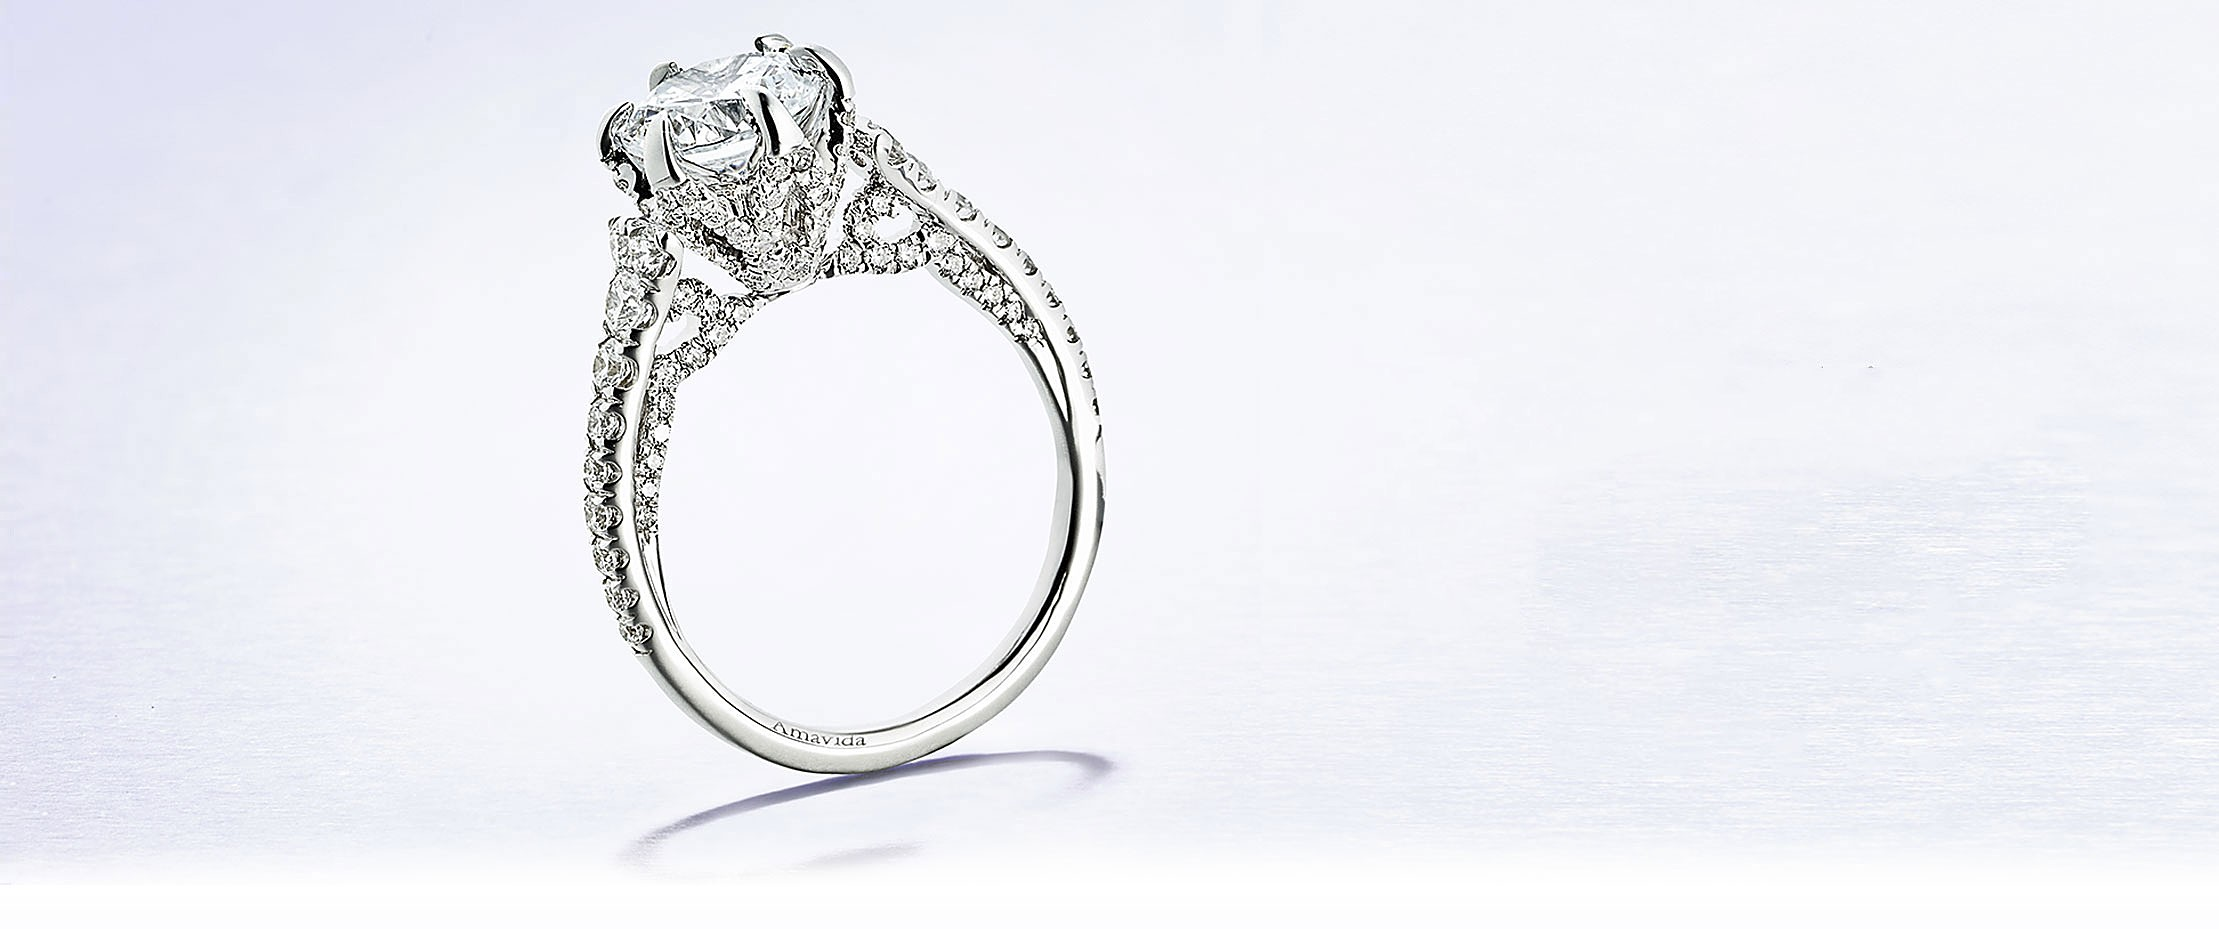 ring engagement tiffany co your browse diamond desktopbg customize band dollar customise rings